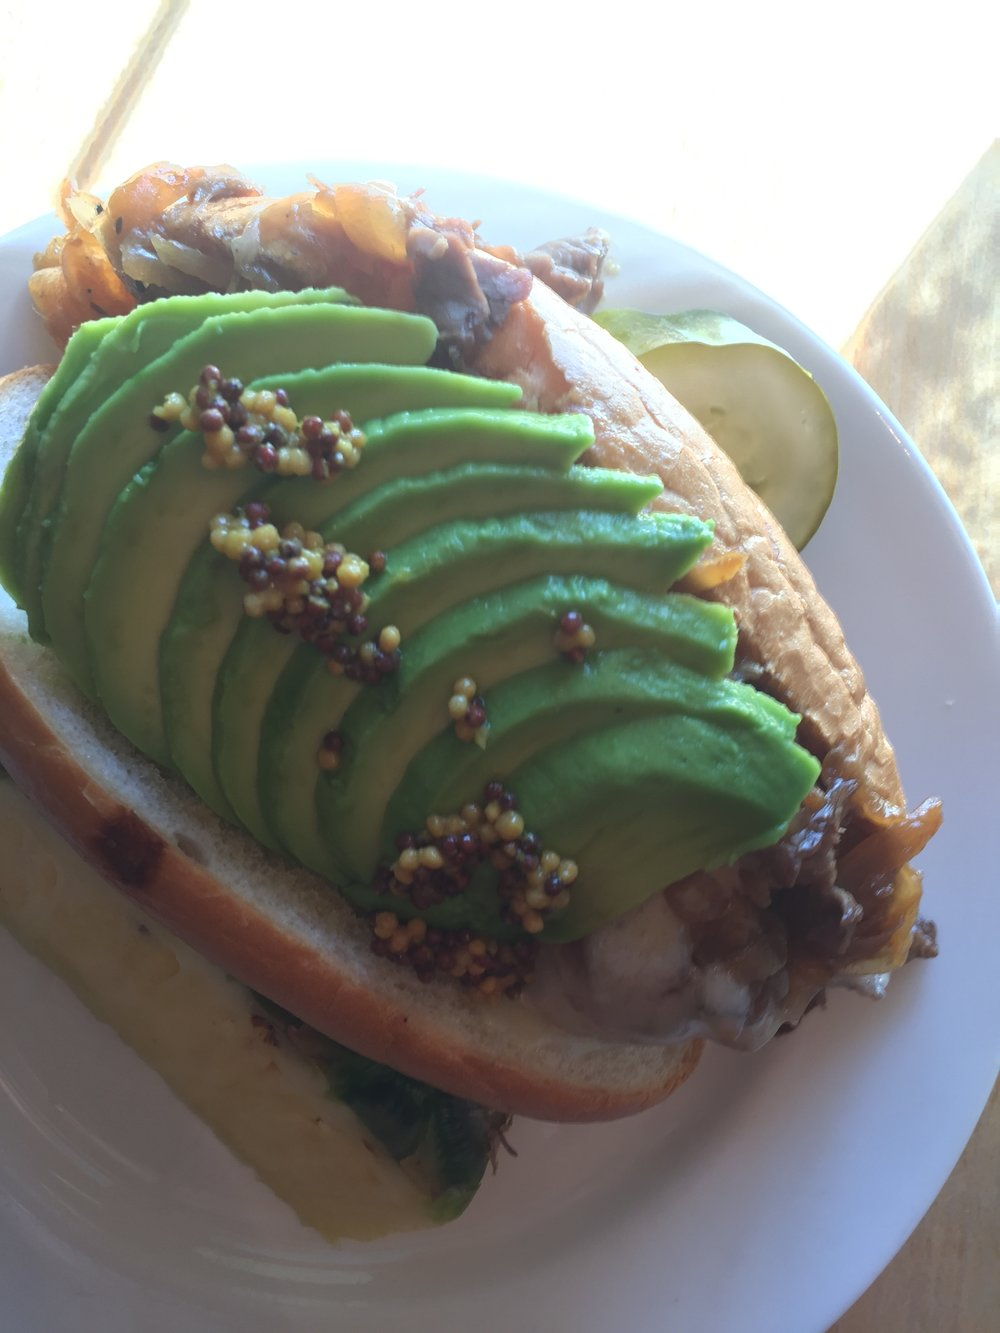 Prime Rib sandwich with caramelized onion, mustard seed and avocado